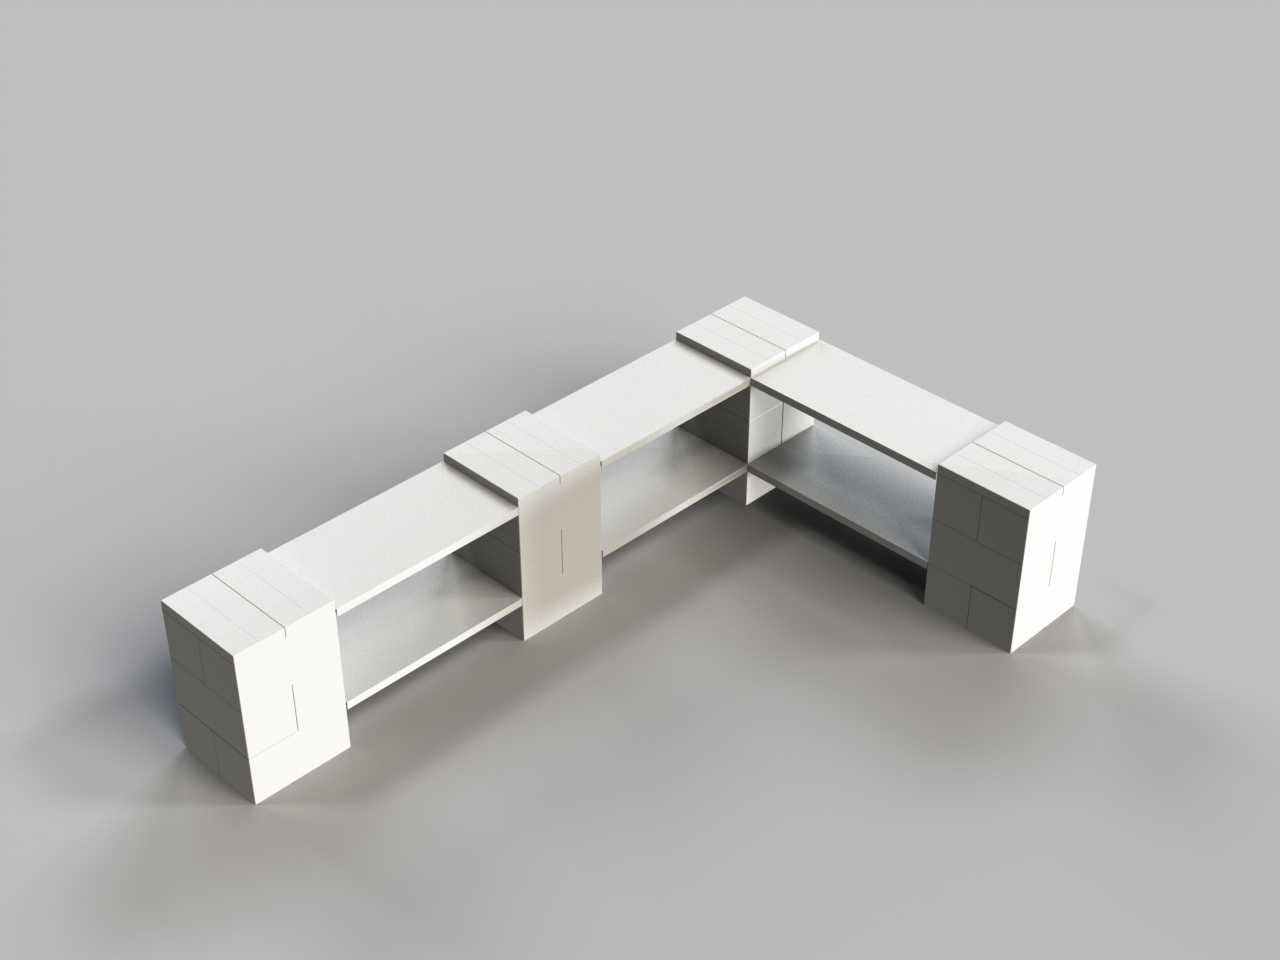 2 Level Double Corner Shelf A